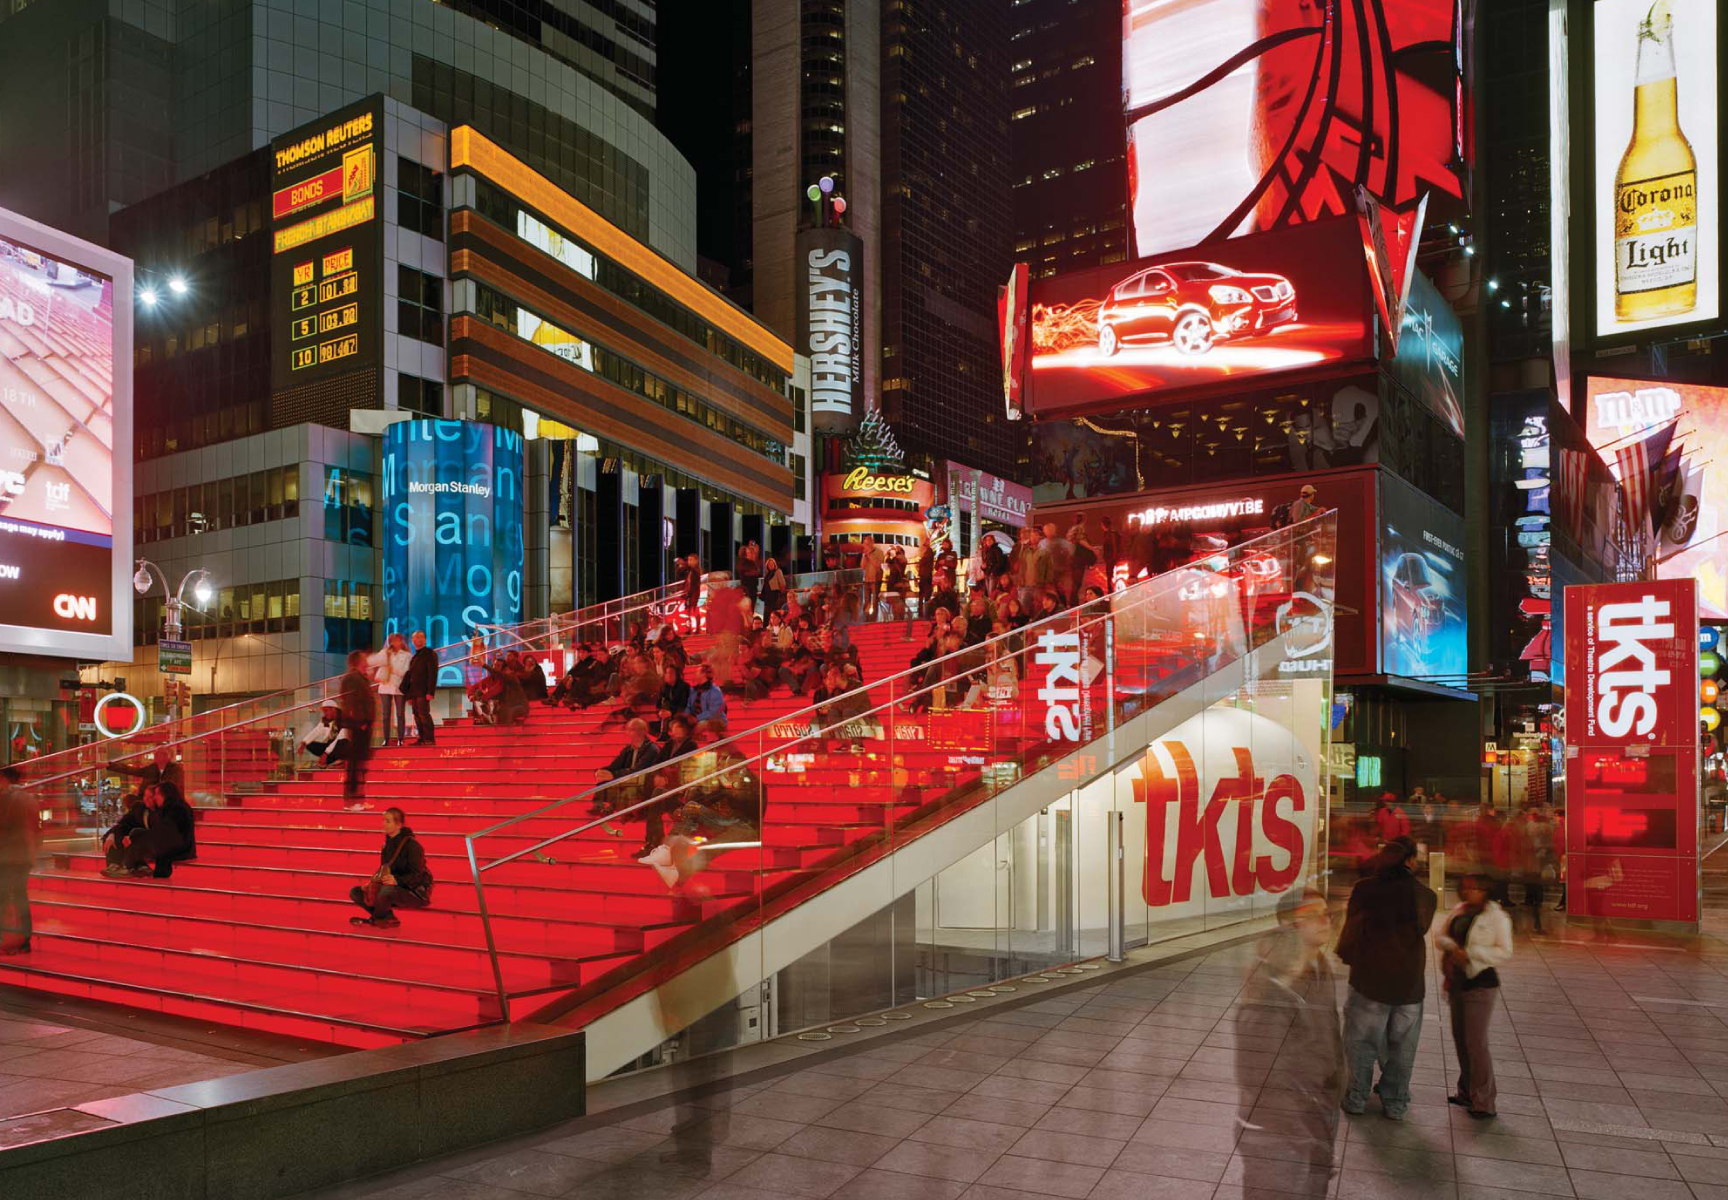 TKTS Booth in Times Square, courtesy of Yazmín Crespo